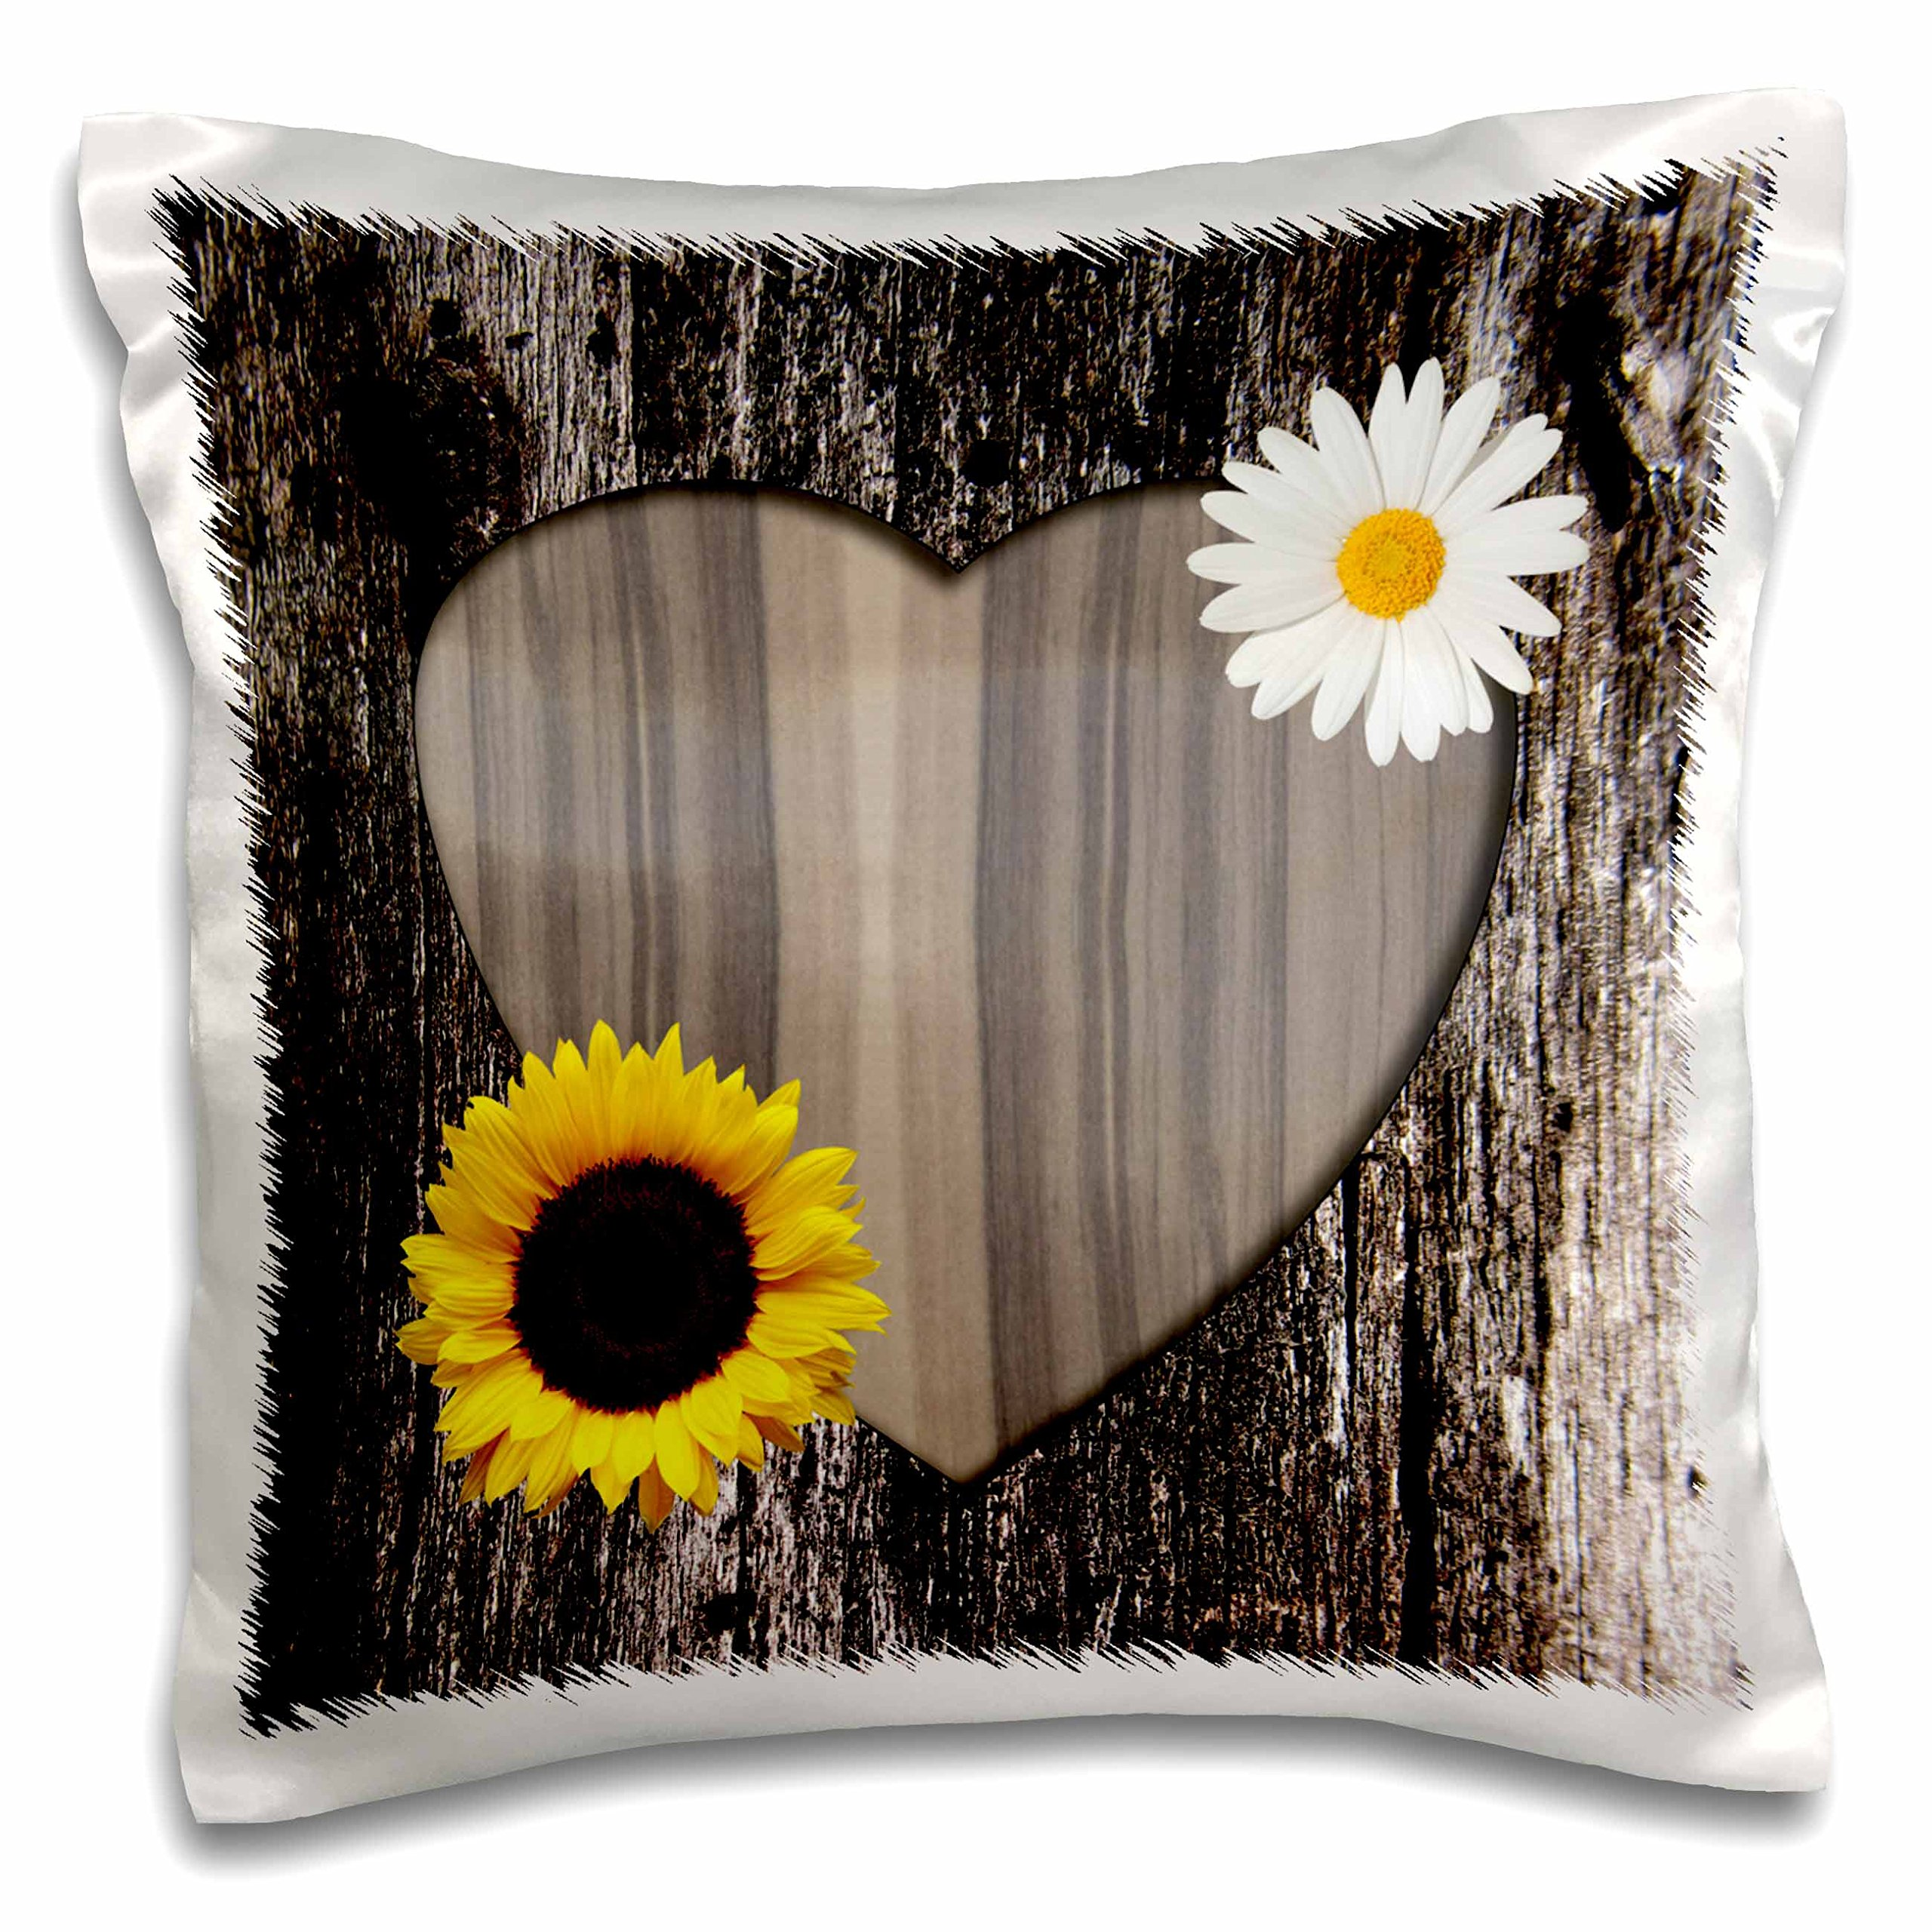 3dRose pc_181828_1 Wood Image Heart with Sunflower and Daisy Pillow Case, 16'' x 16''